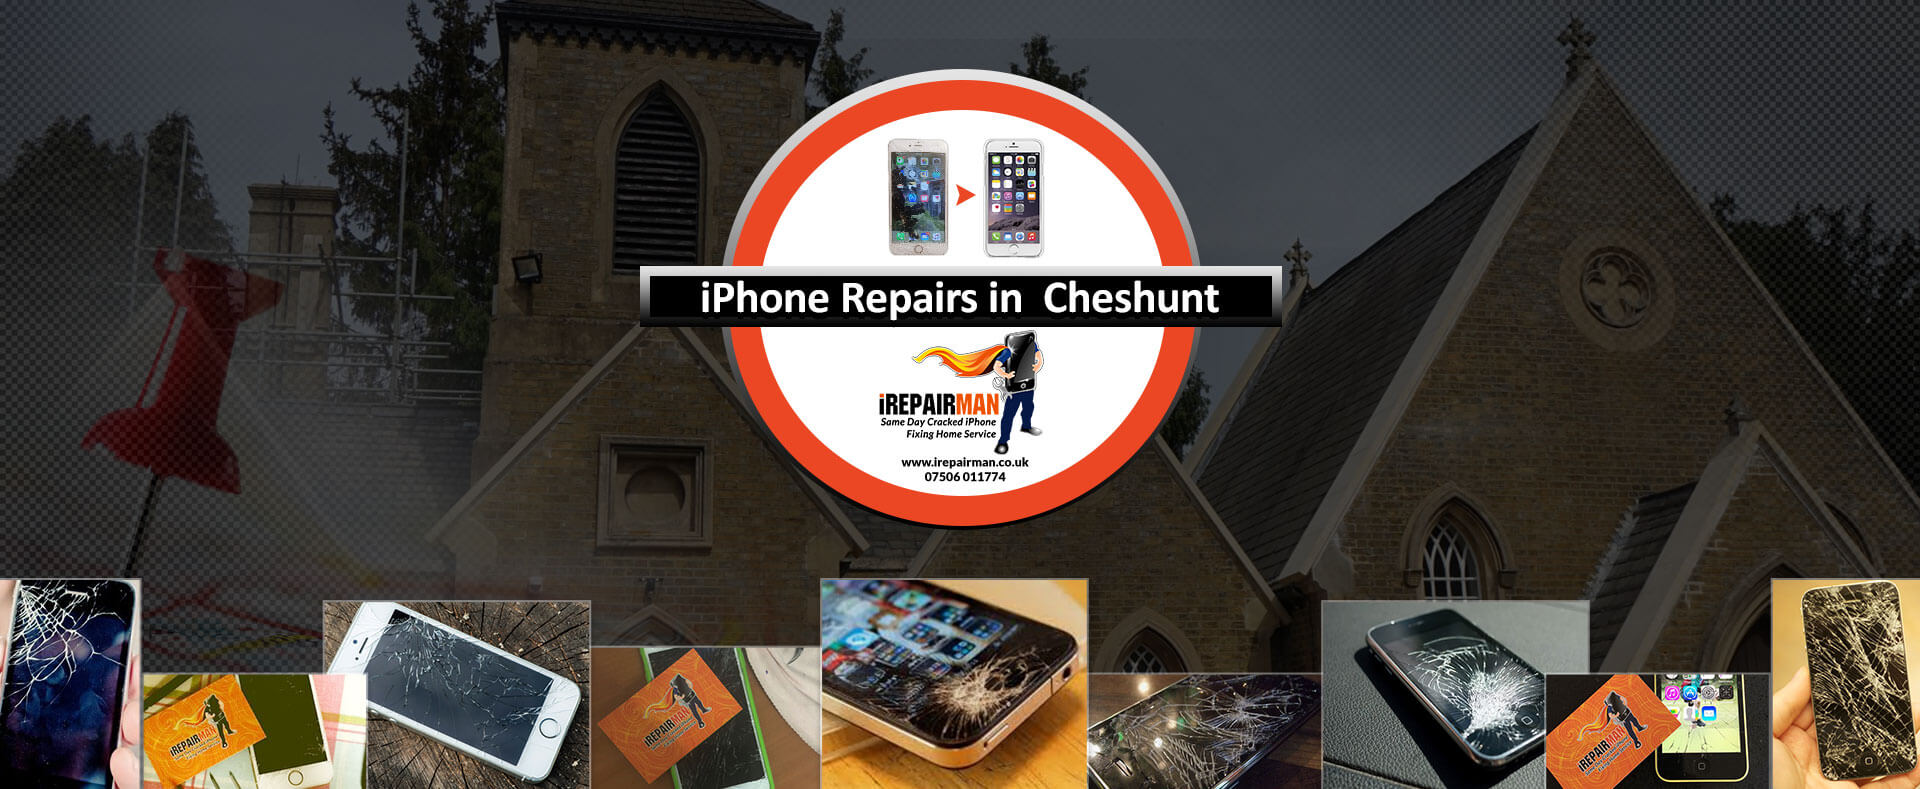 iPhone Repairs in Cheshunt